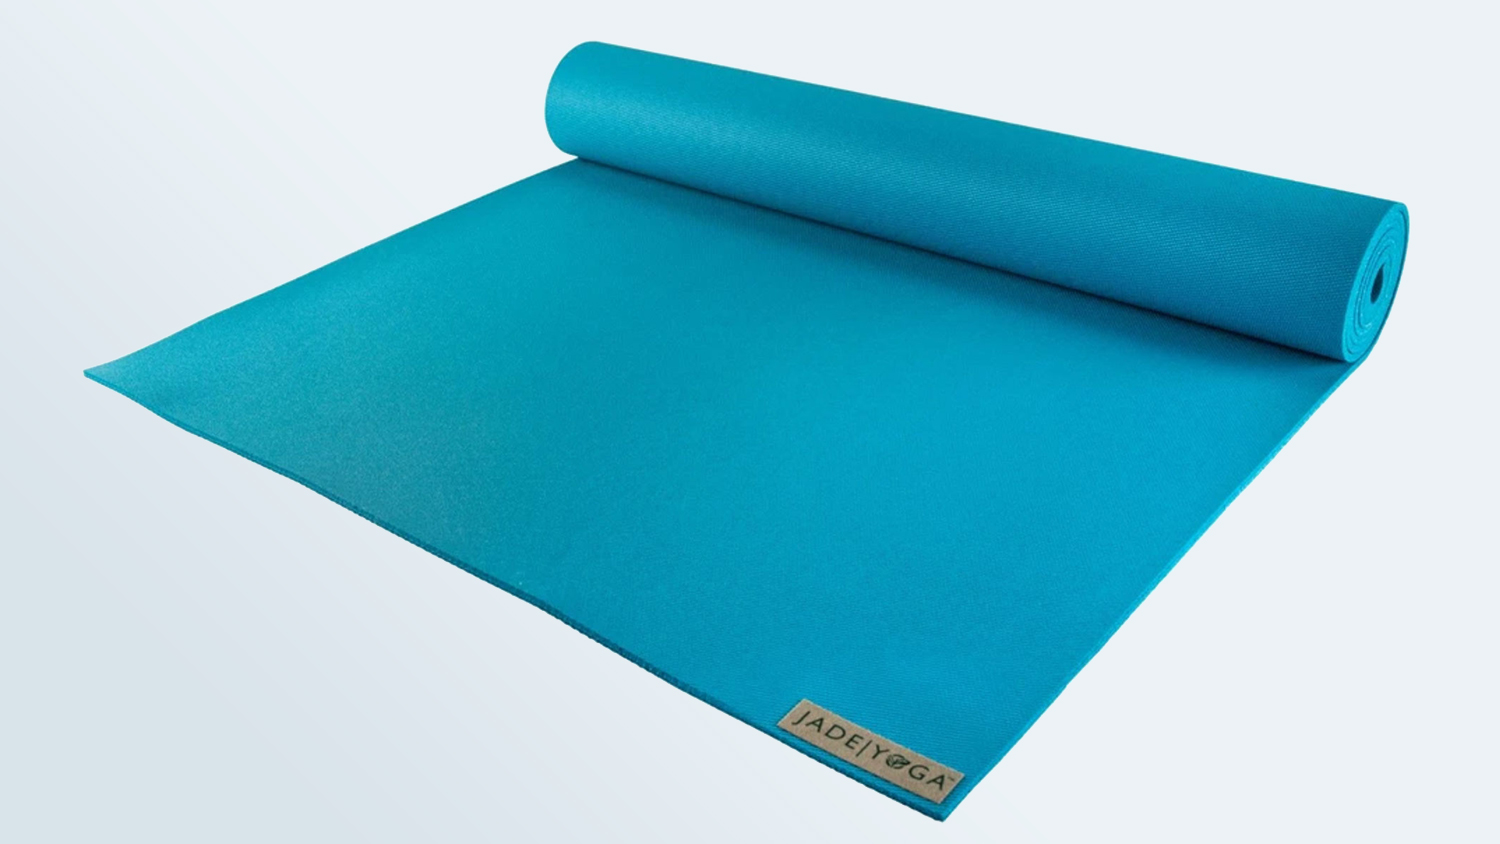 Best yoga mats: Best yoga mats for home workouts: Jade Harmony MatProsourceFit Extra Thick Yoga and Pilates Mat